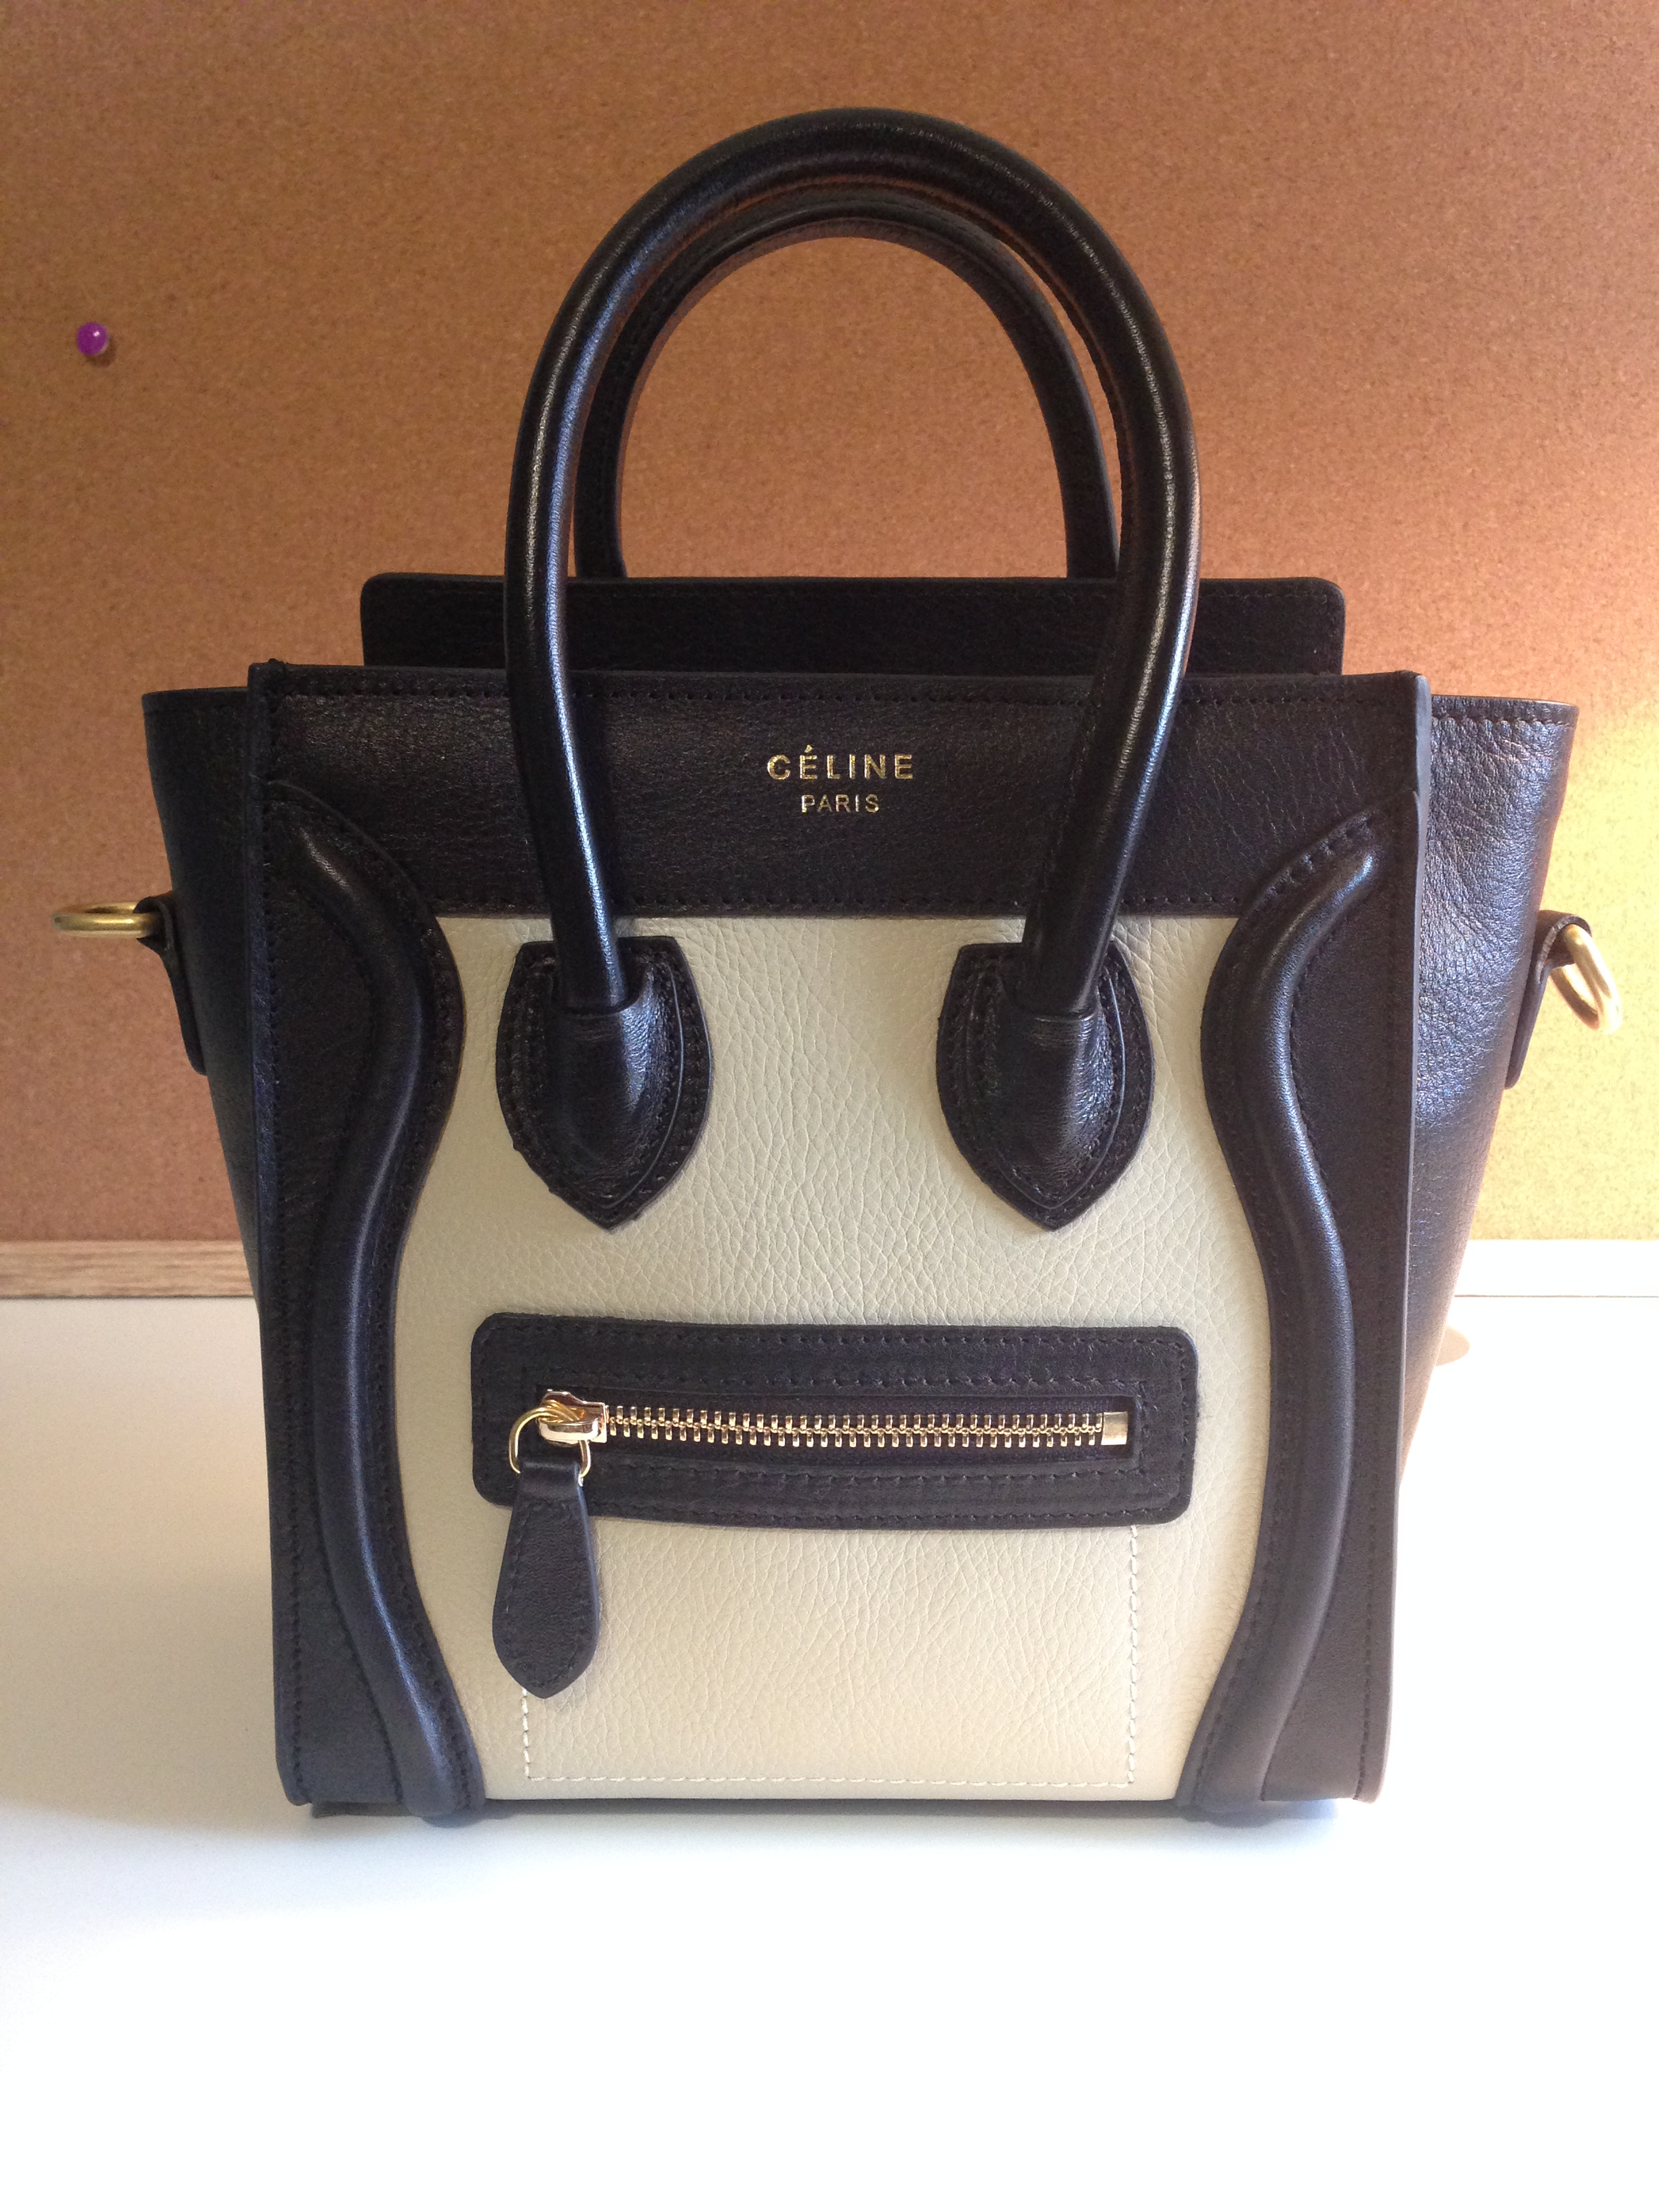 imitation celine bag - Celine Replica Bags: The Good, the Bad, and the Ugly! �C Authentic ...